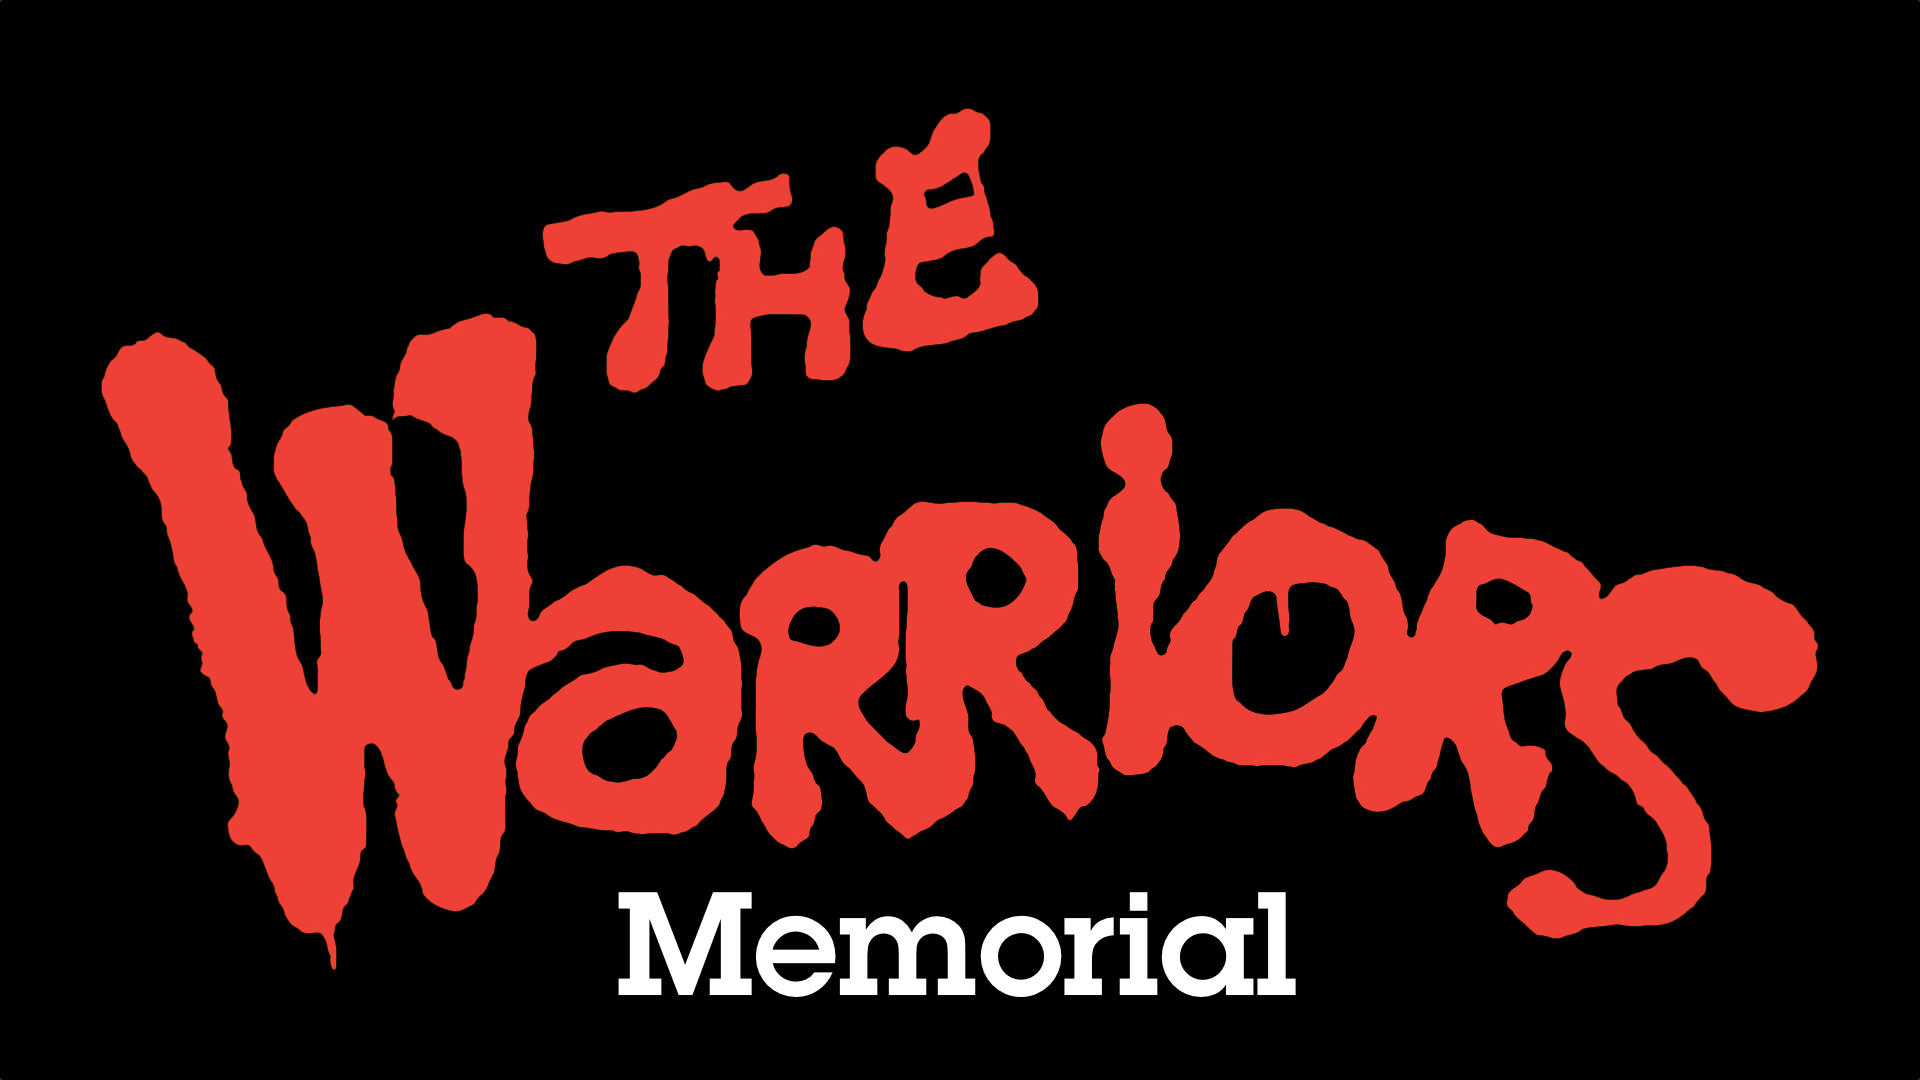 The Warriors Memorial Video